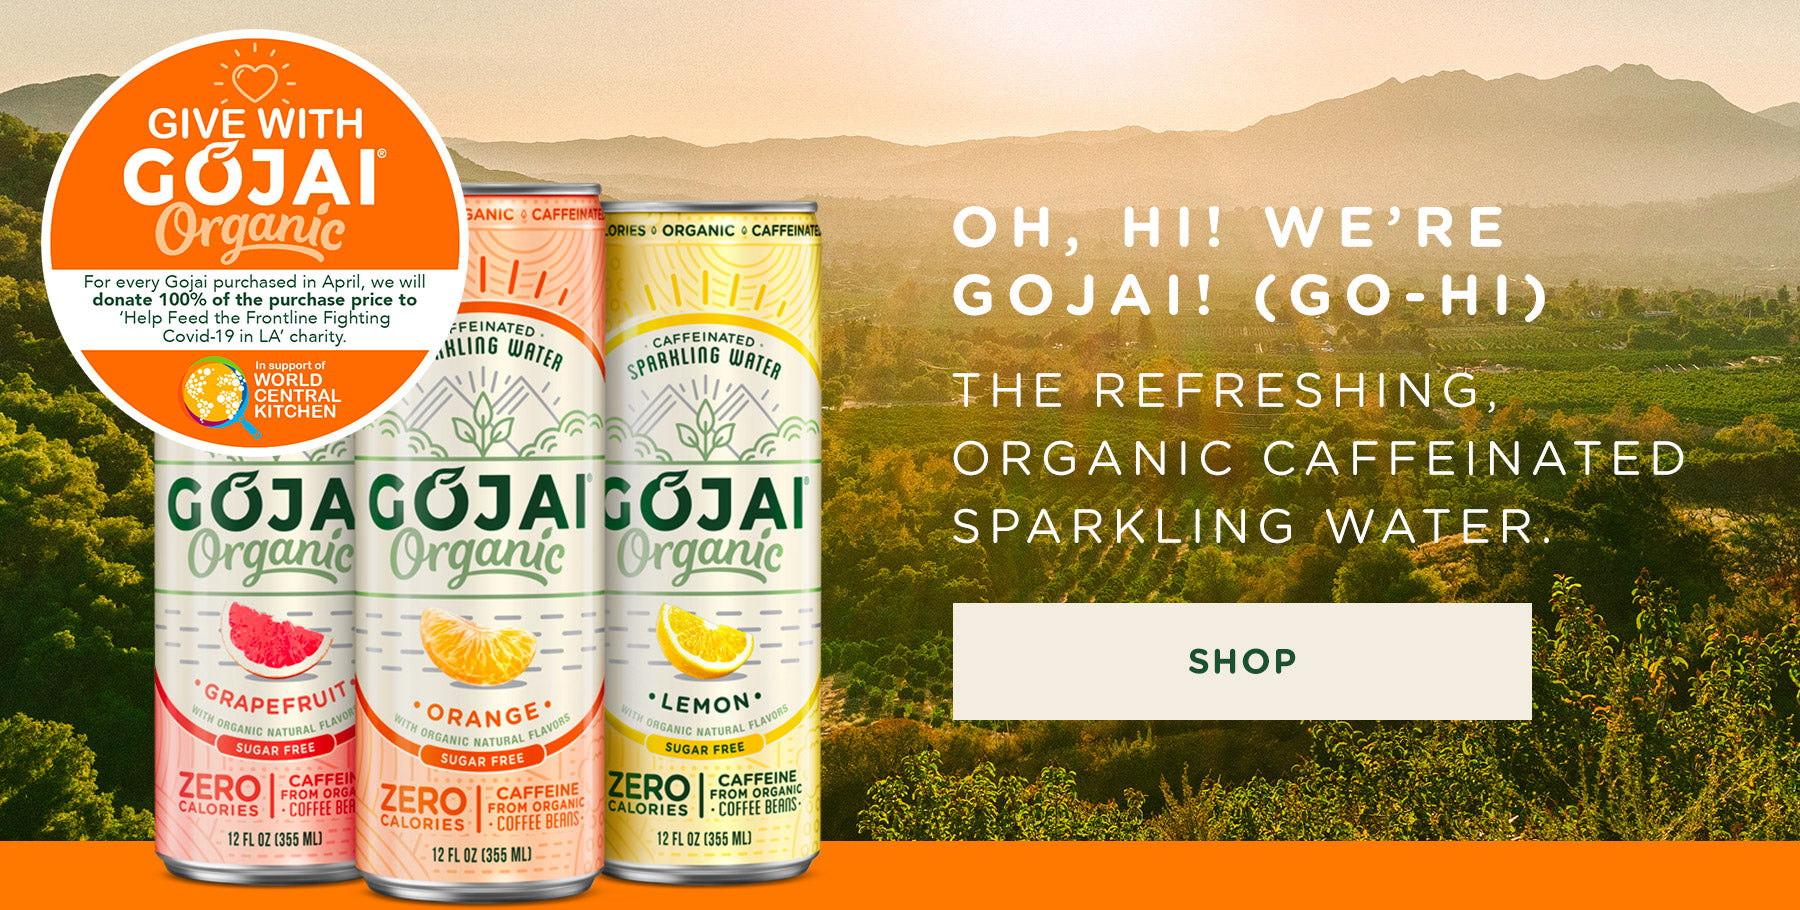 Oh hi we're Gojai the refreshing, organic caffeinated, sparkling water